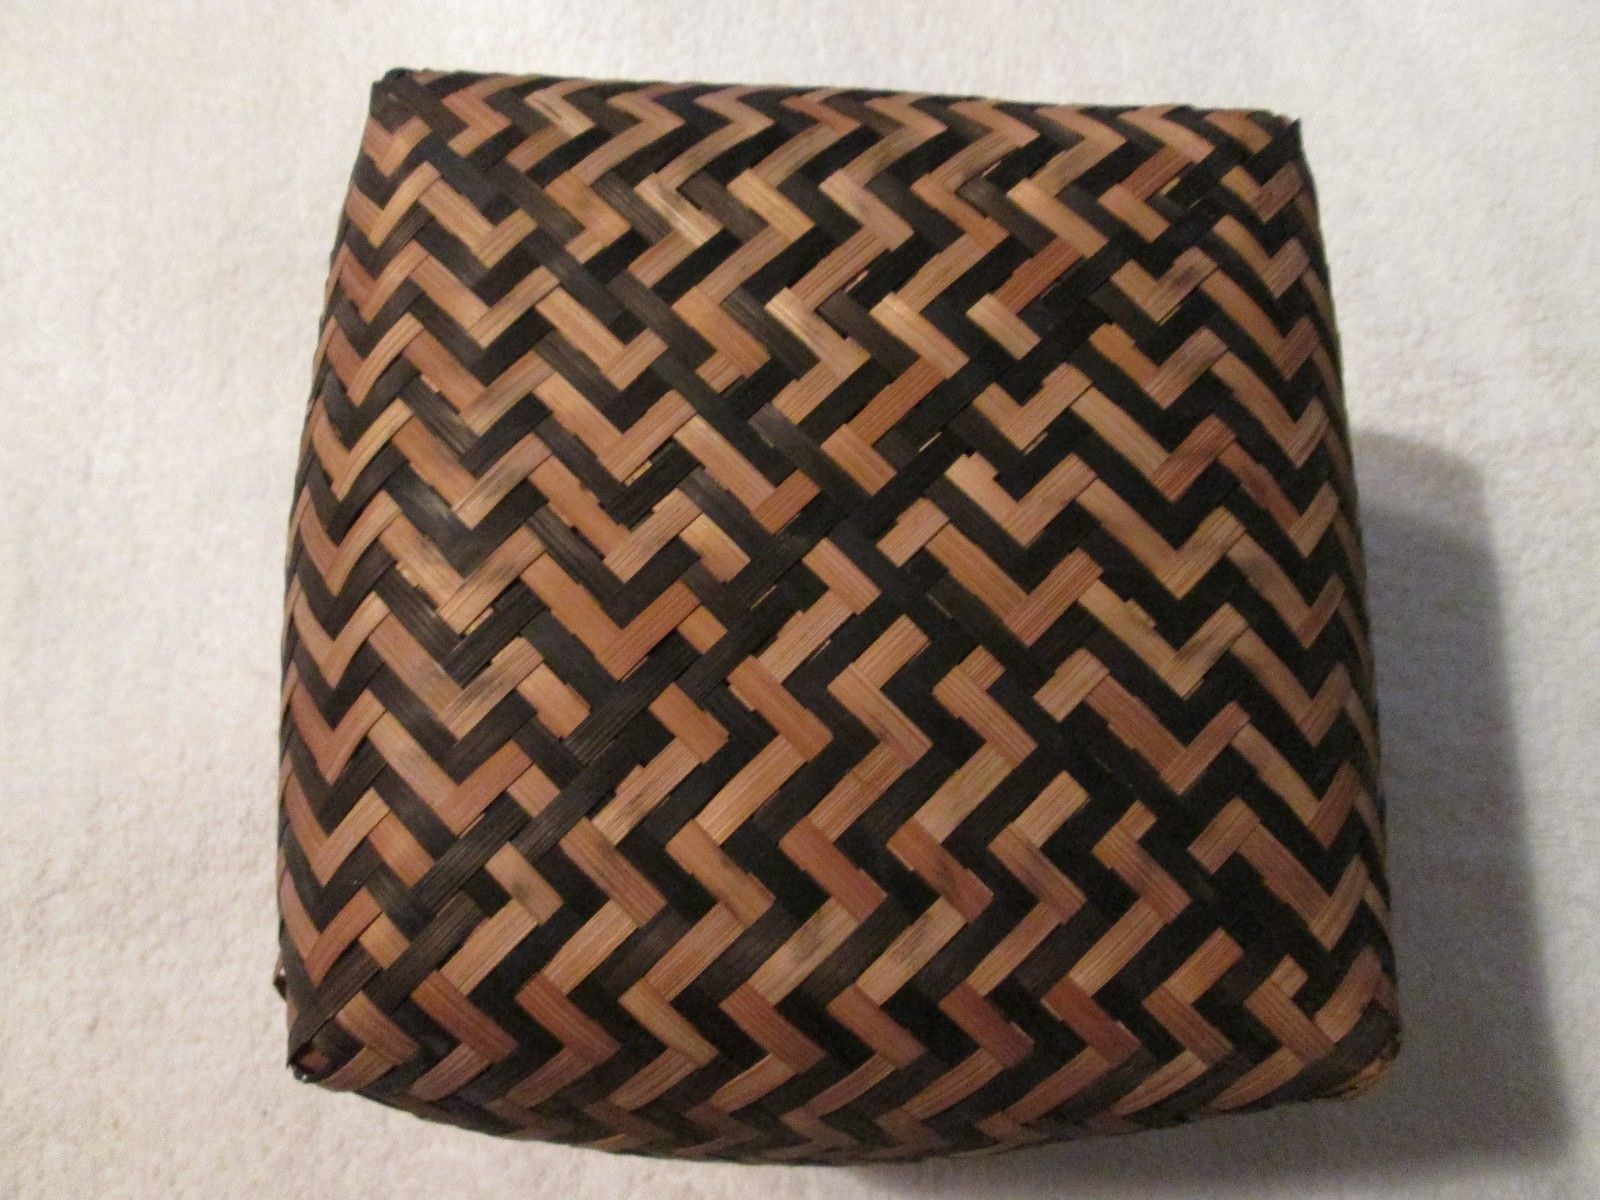 Antique Cherokee Indian River Cane Basket (Early 1900's ?)